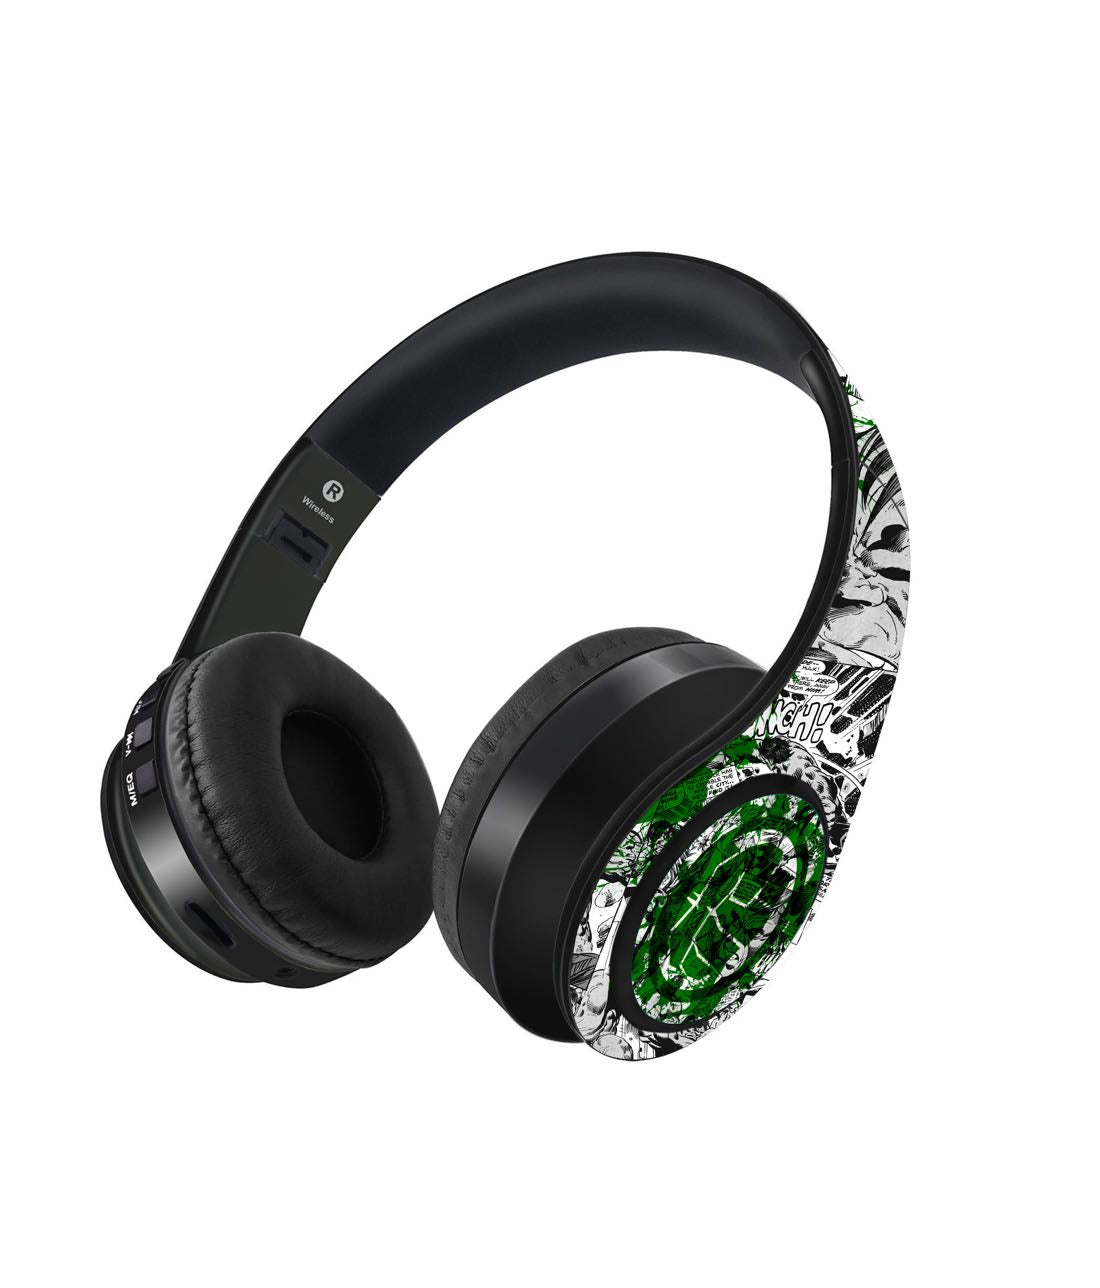 Splash Out Hulk Fist - Decibel Wireless On Ear Headphones -Macmerise - India - www.superherotoystore.com